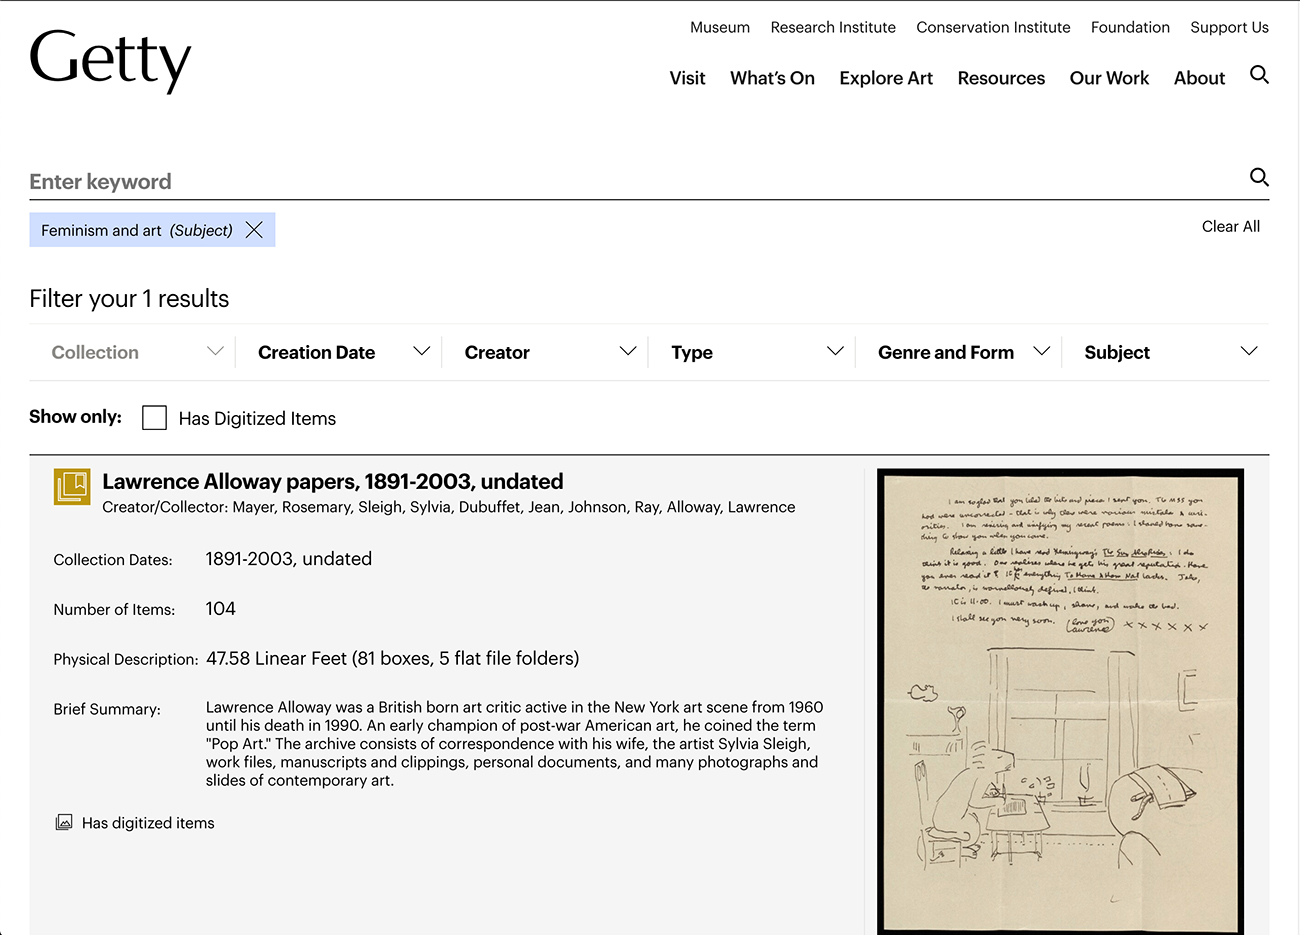 Screen capture showing an archival document with a letter and sketch from the Getty archives